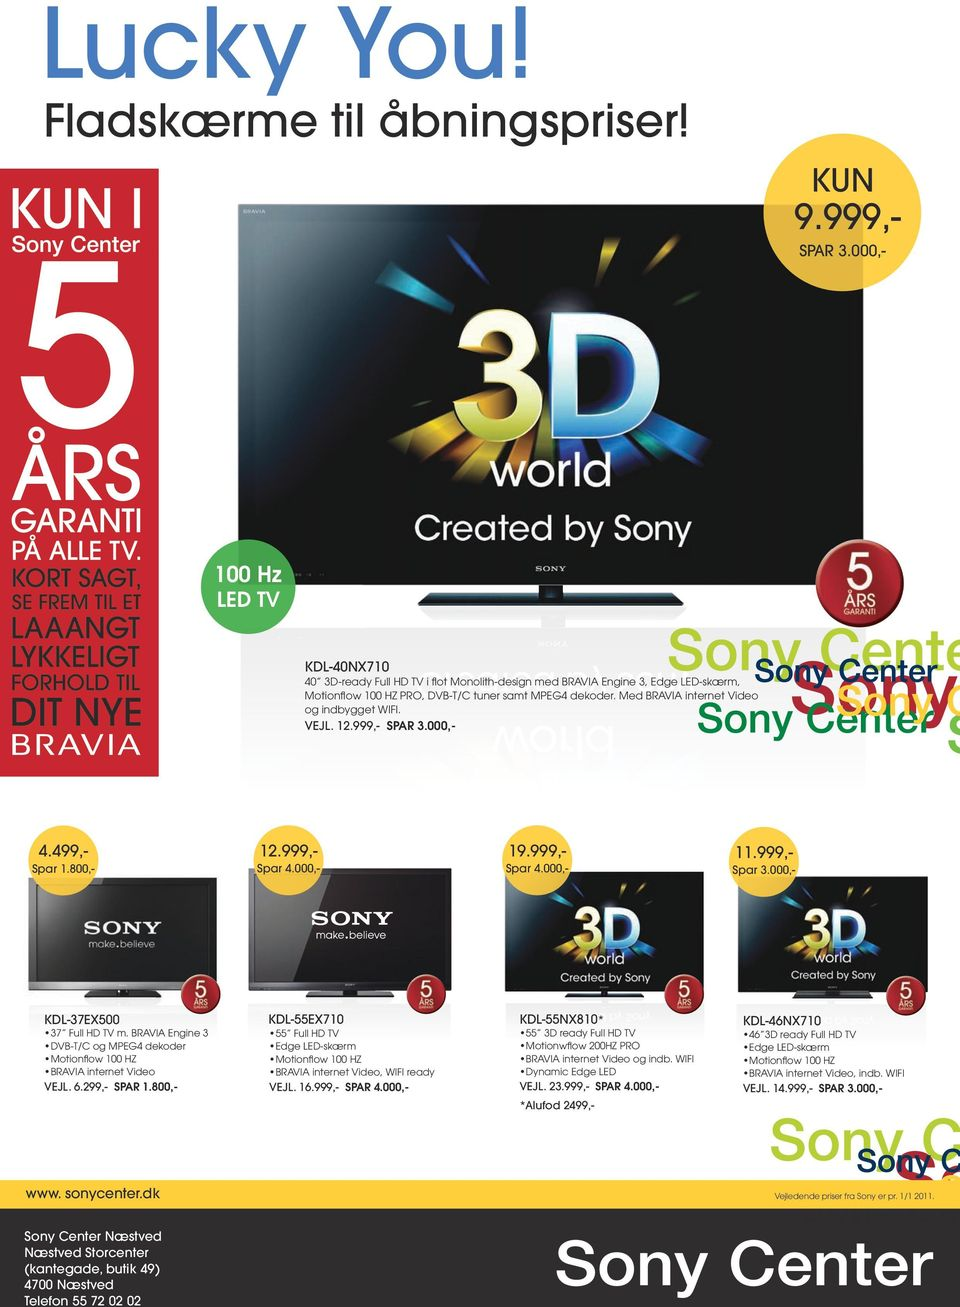 Med BRAVIA internet Video og indbygget WIFI. VEJL. 1 SPAR 3.000,- 4.499,- Spar 1.800,- 19.999,- Spar 4.000,- 1 Spar 4.000,- 11.999,- Spar 3.000,- KDL-37EX500 37 Full HD TV m.